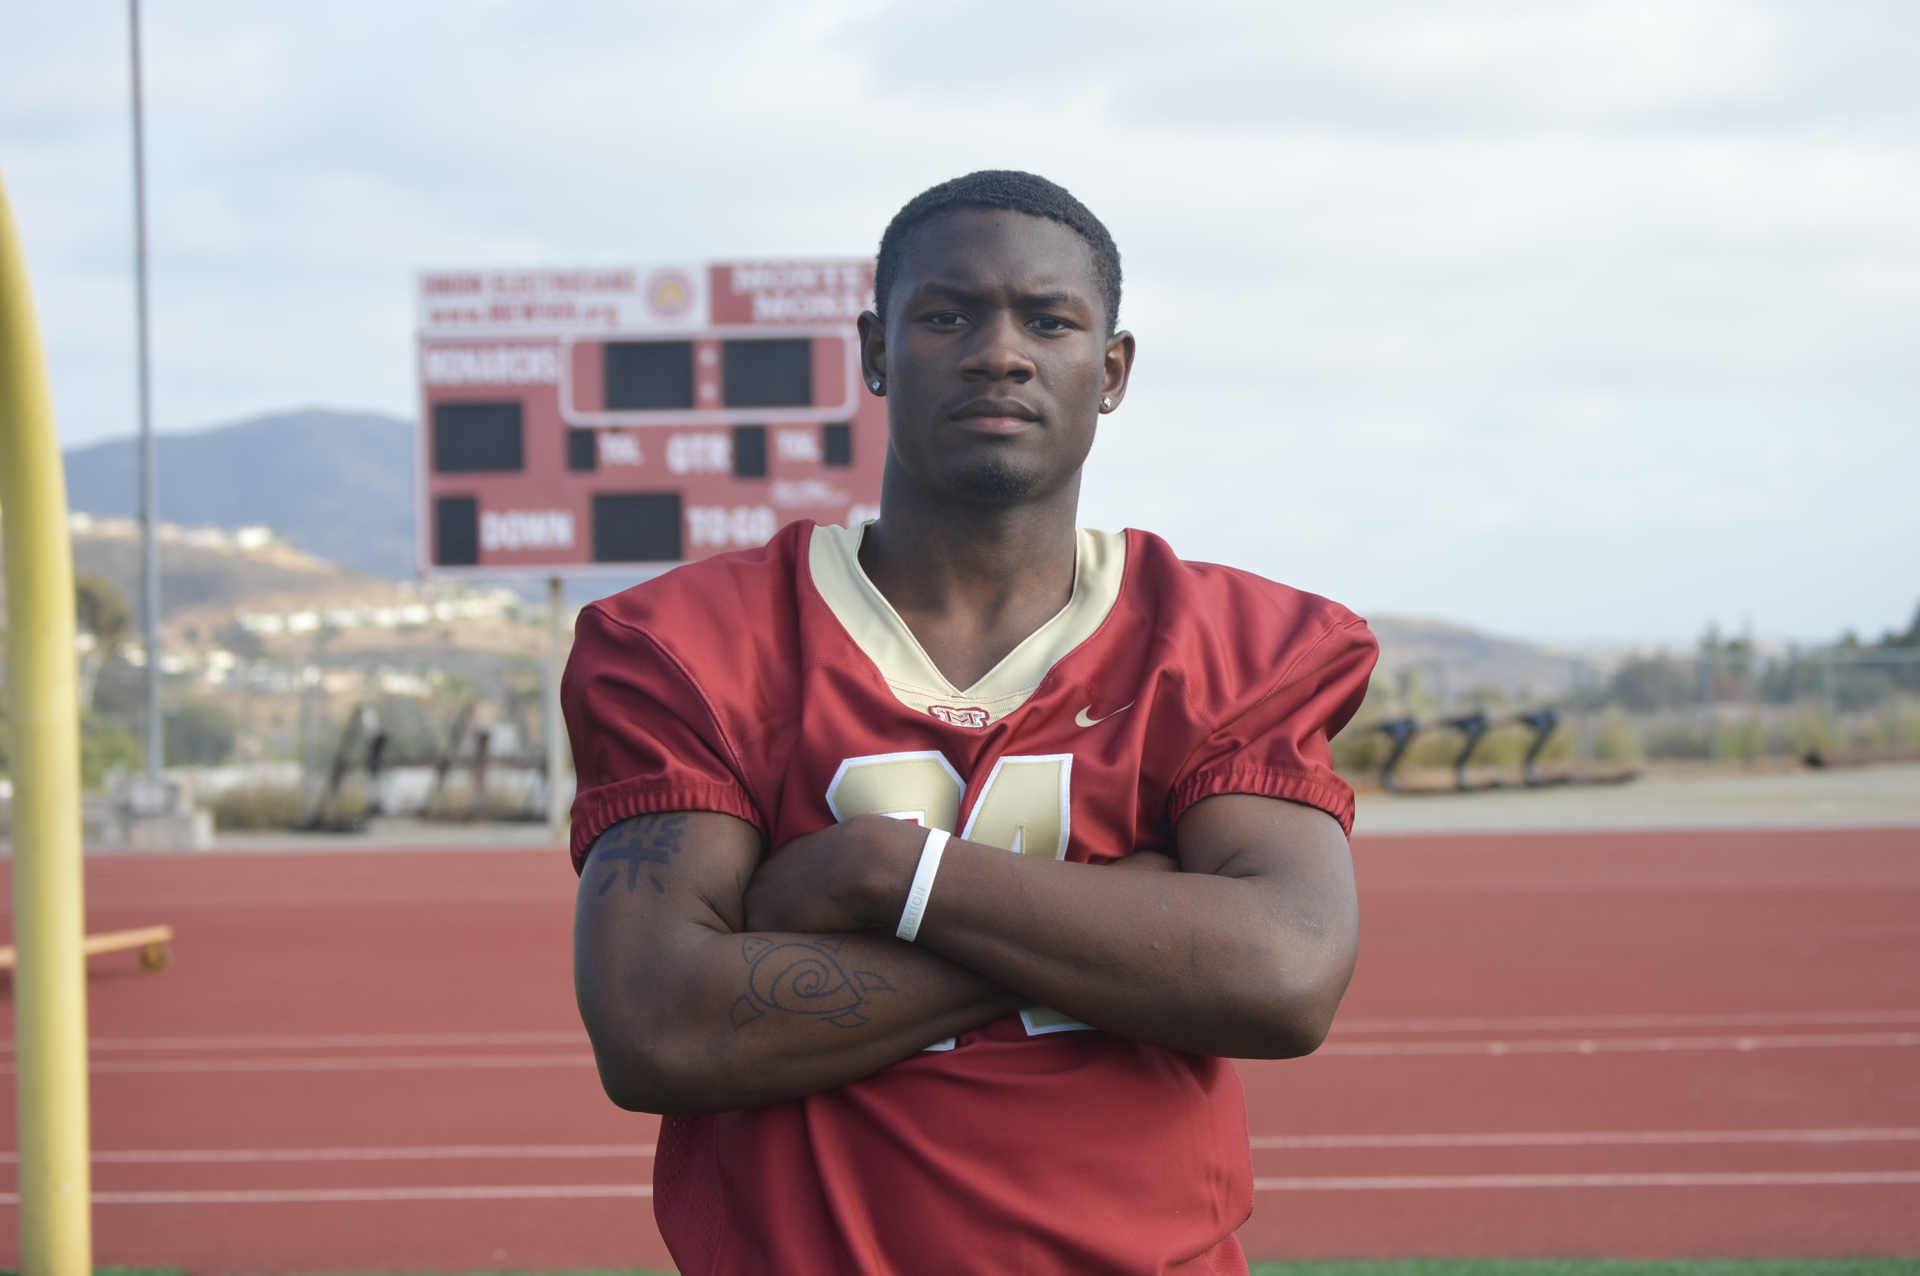 Monte Vista High School - RB Jahmon McClendon